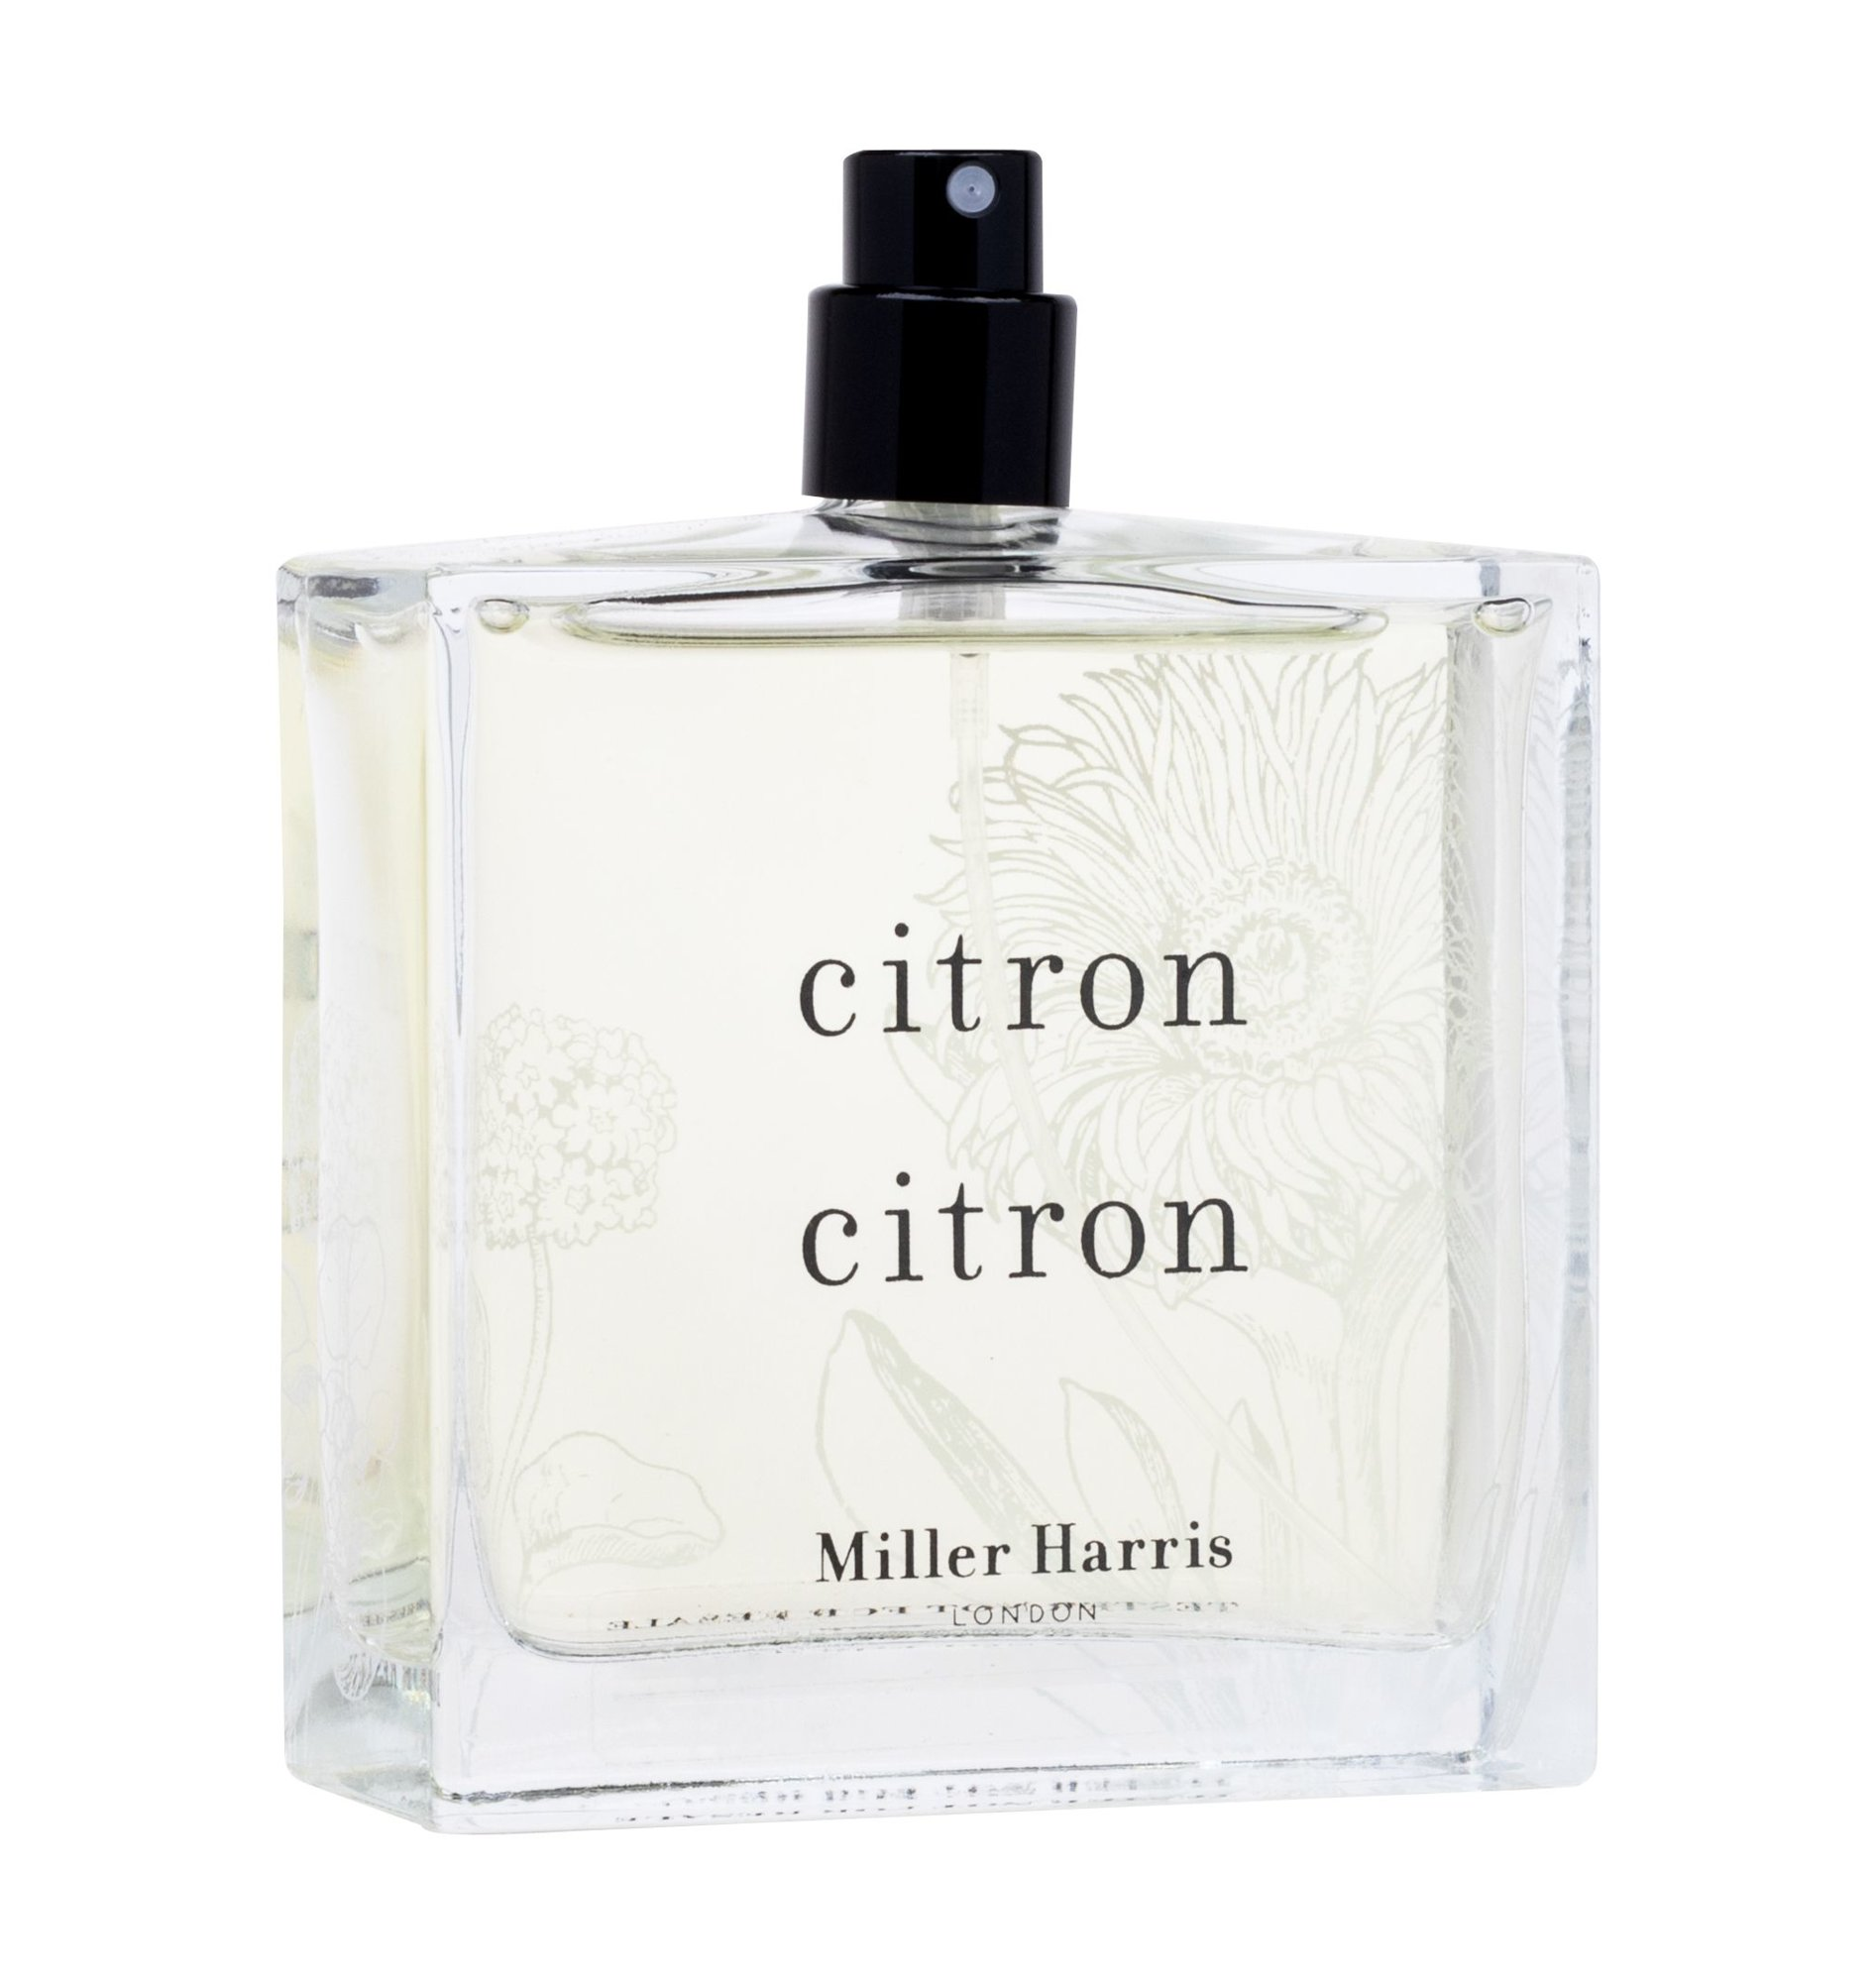 Miller Harris Citron Citron EDP 100ml